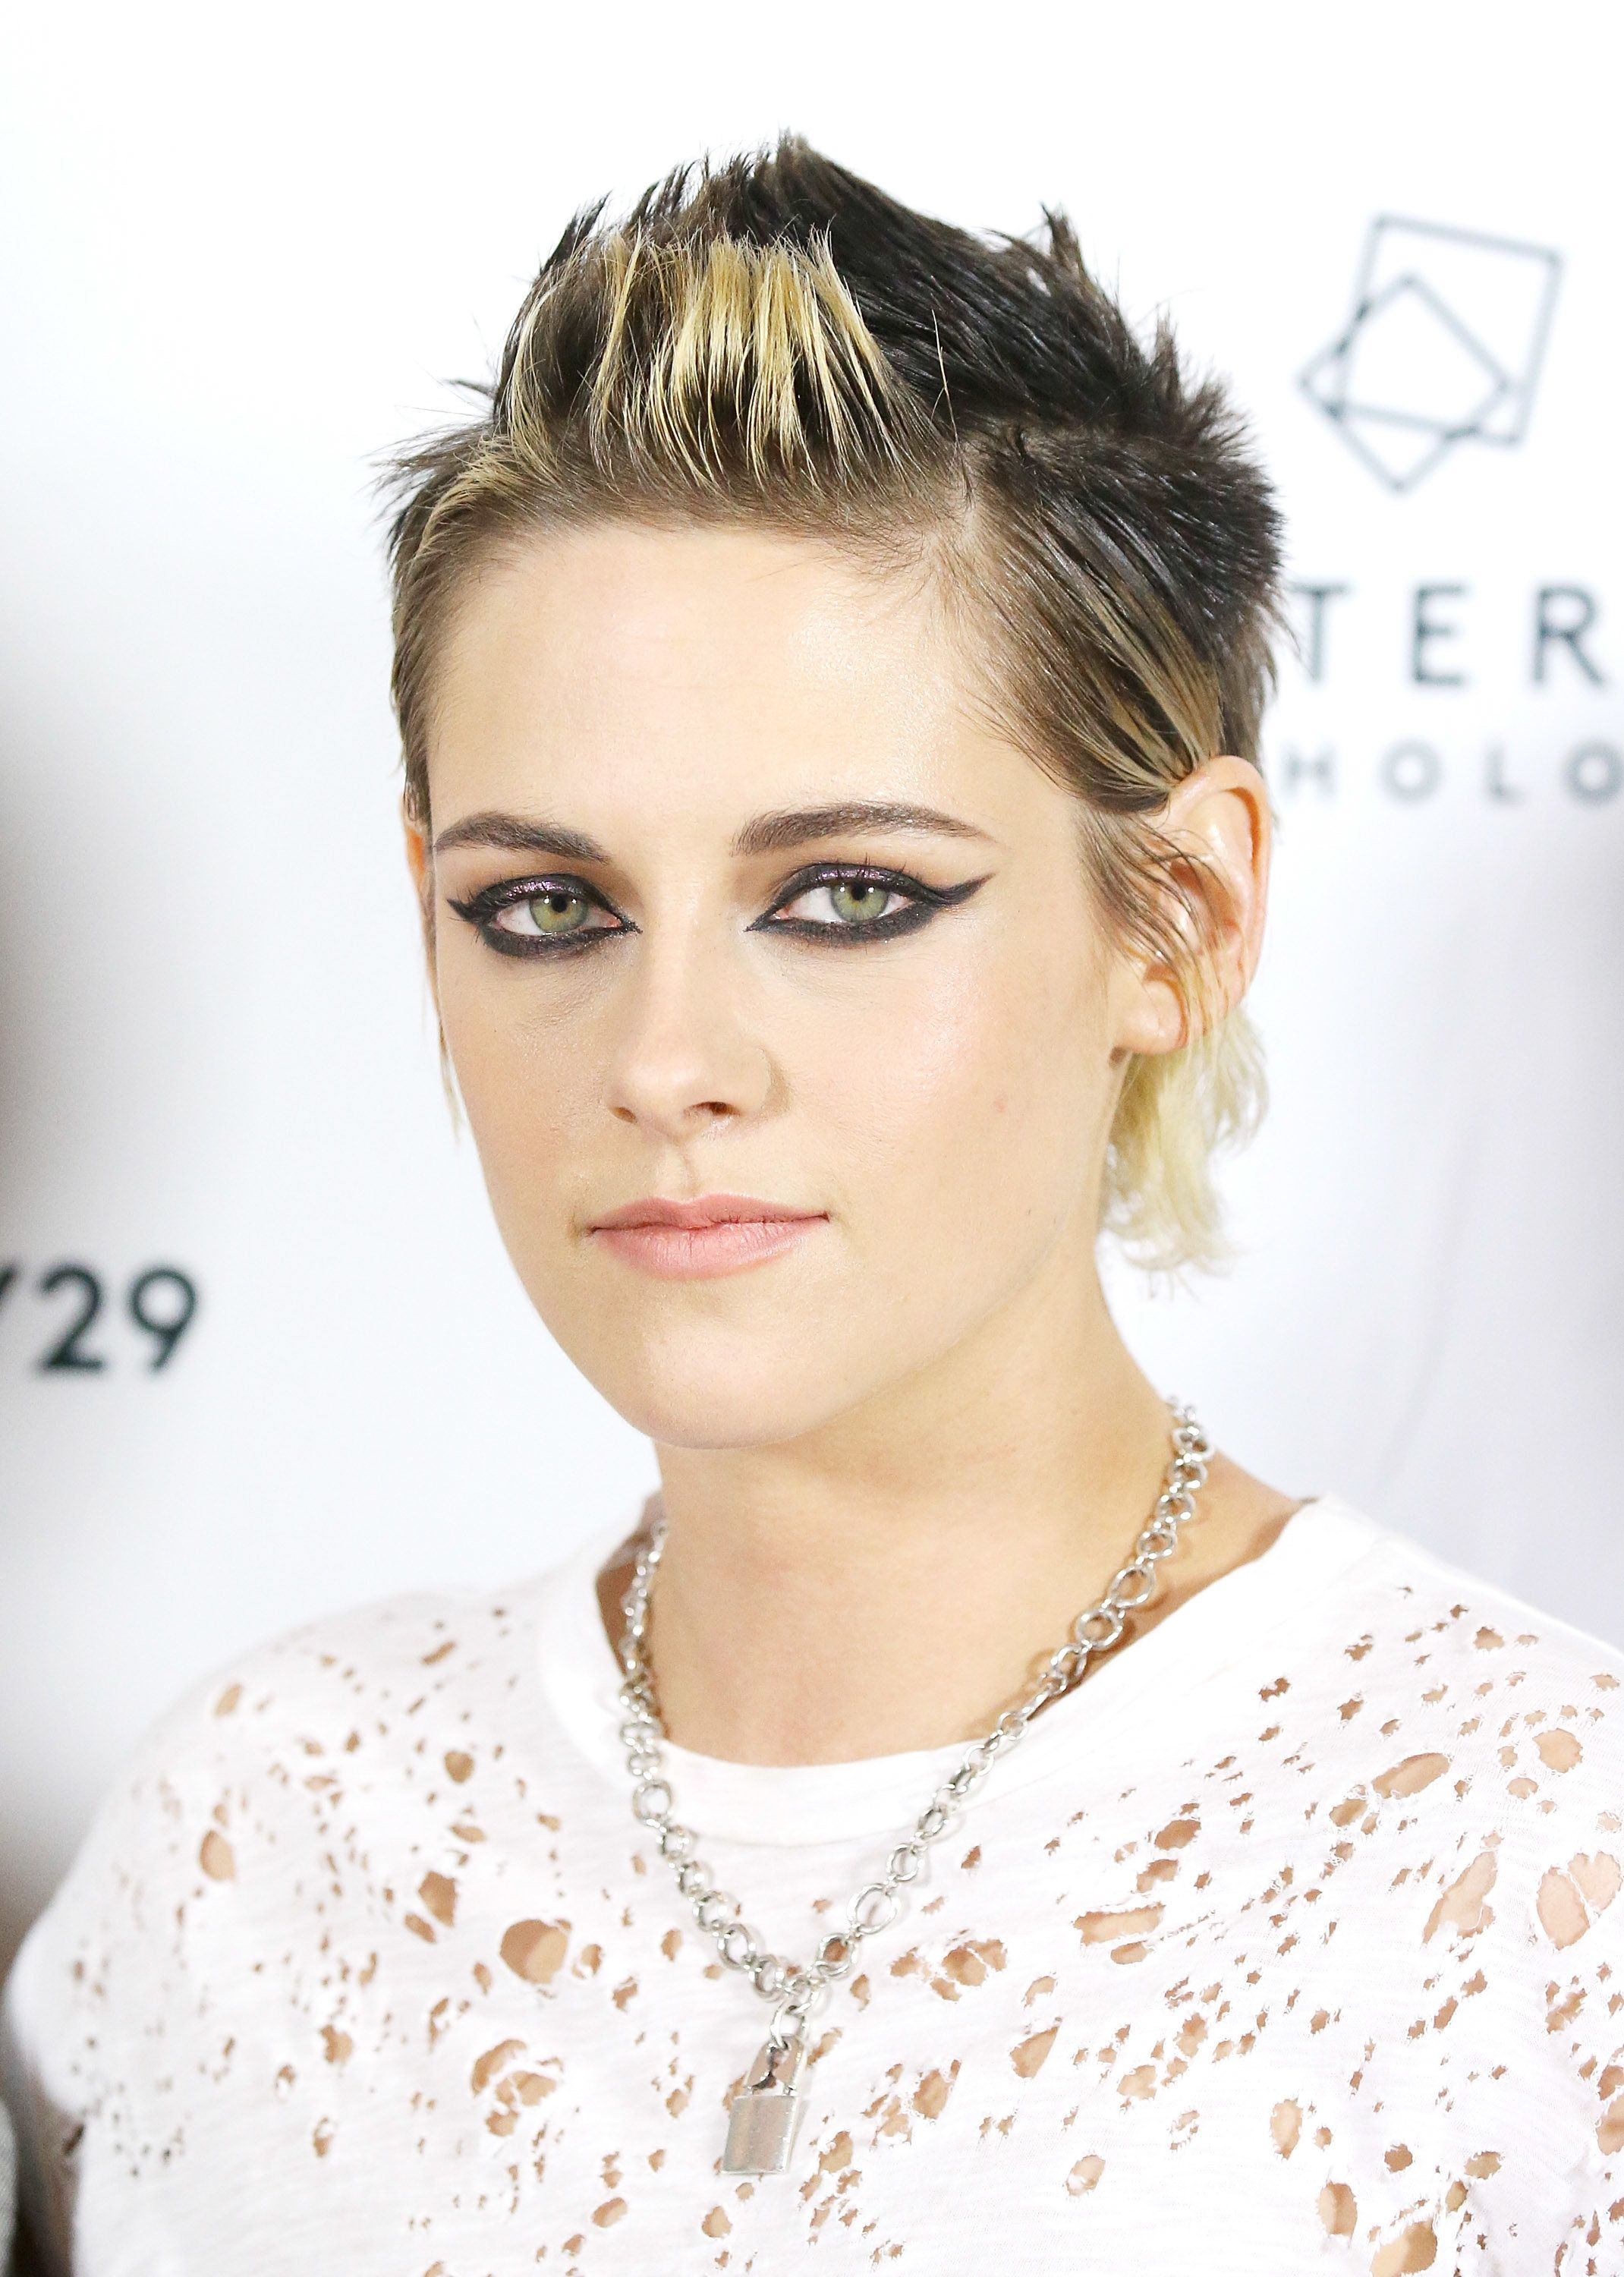 Kristen Stewart's Mullet With Frosted Tips Is Quite The